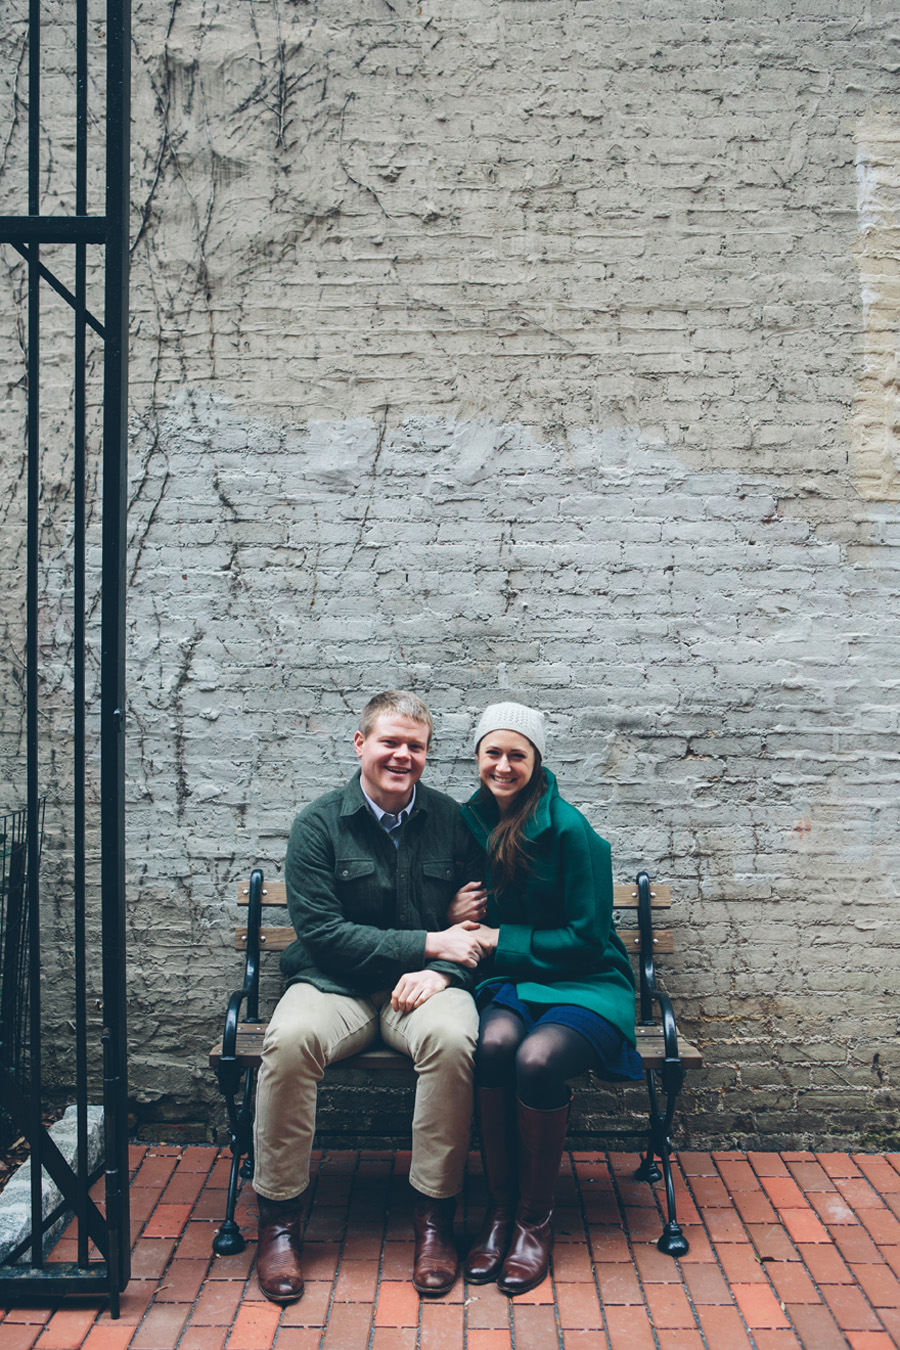 Hannah-Nate-NYC-Engagement-Session-Cynthiachung-0449.jpg